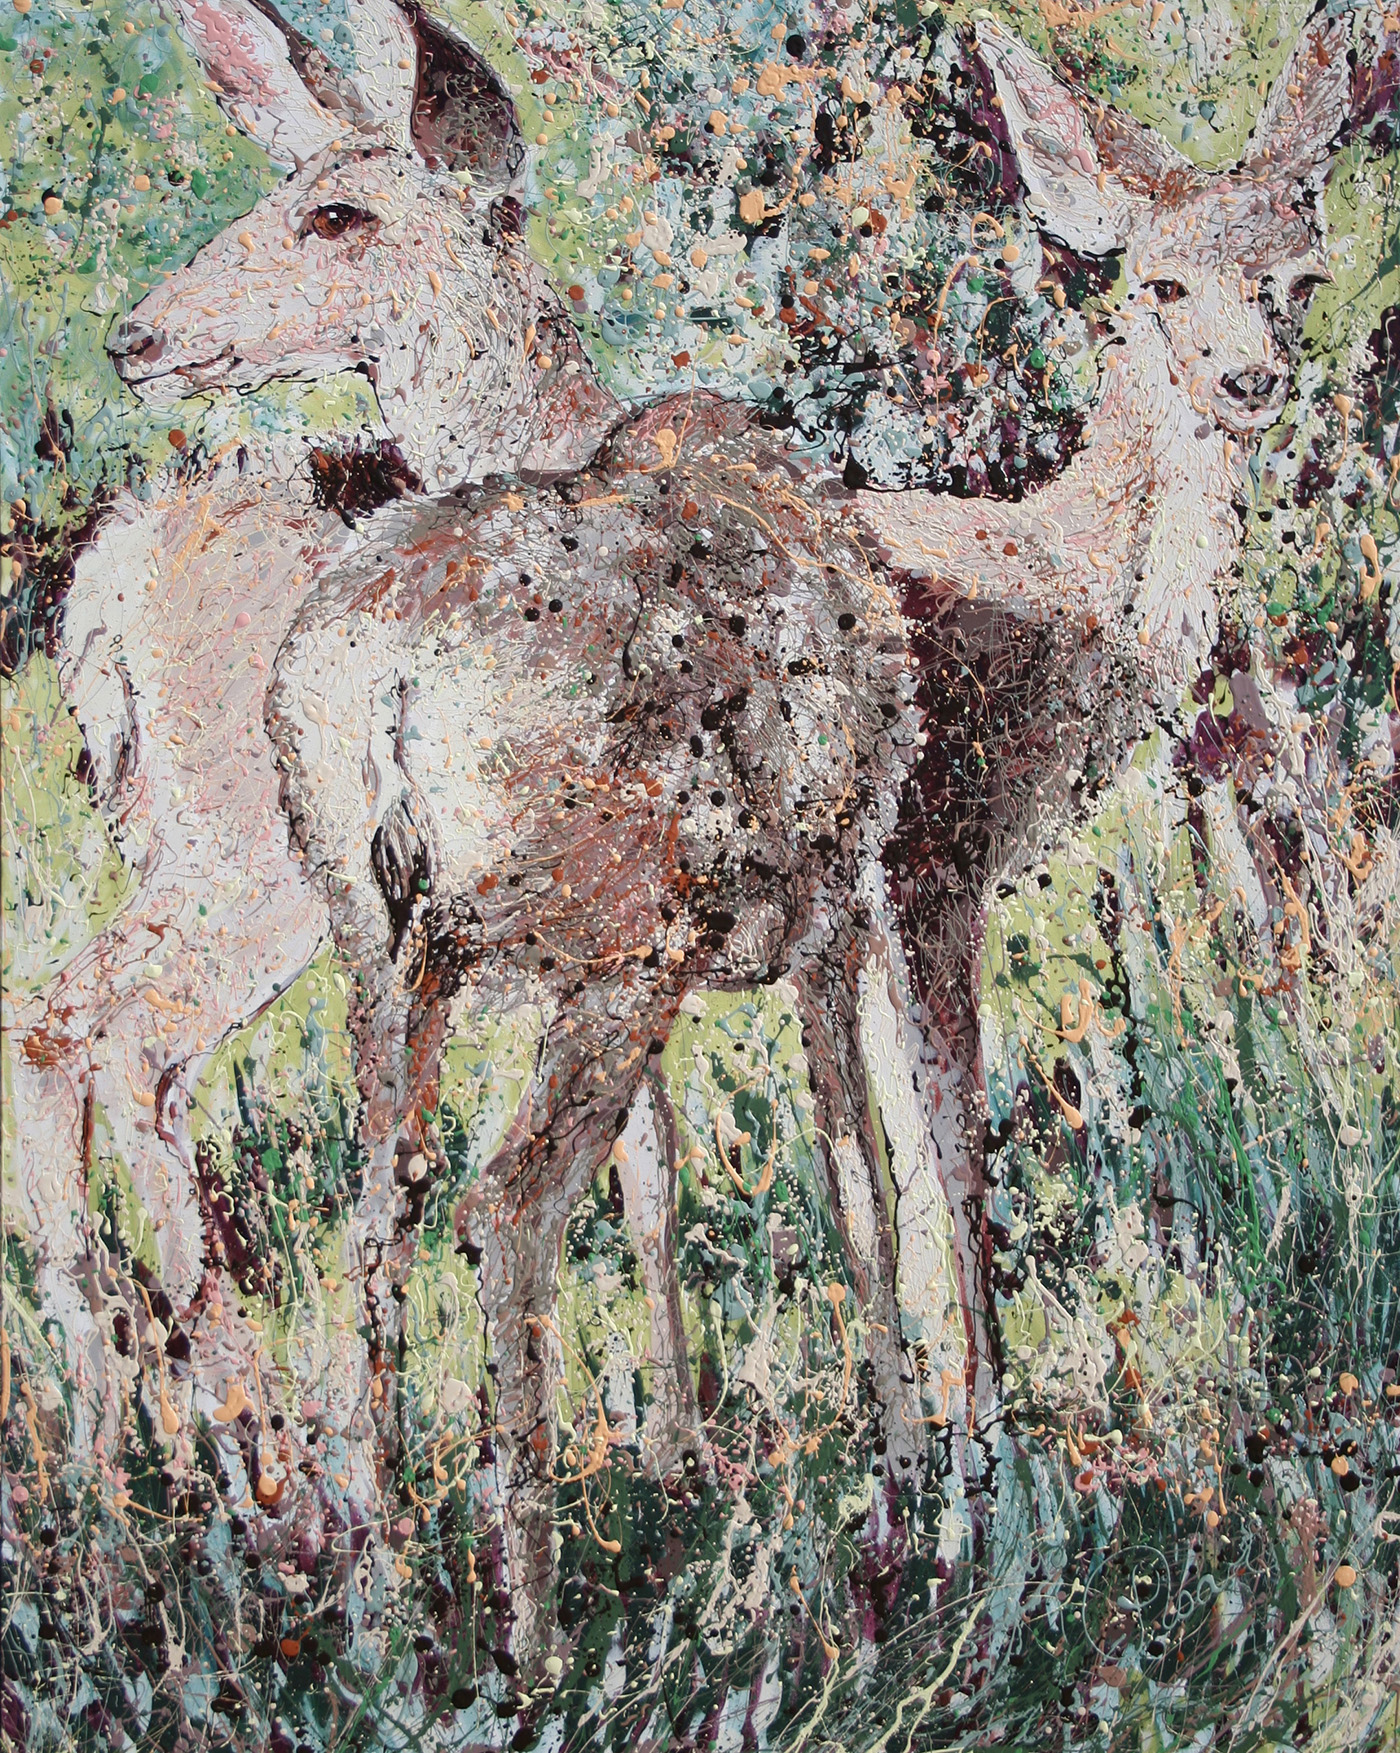 Mule Deer Latex Enamel Painting on Gallery Wrapped Canvas by Fort Collins, Colorado Artist Lisa Cameron Russell